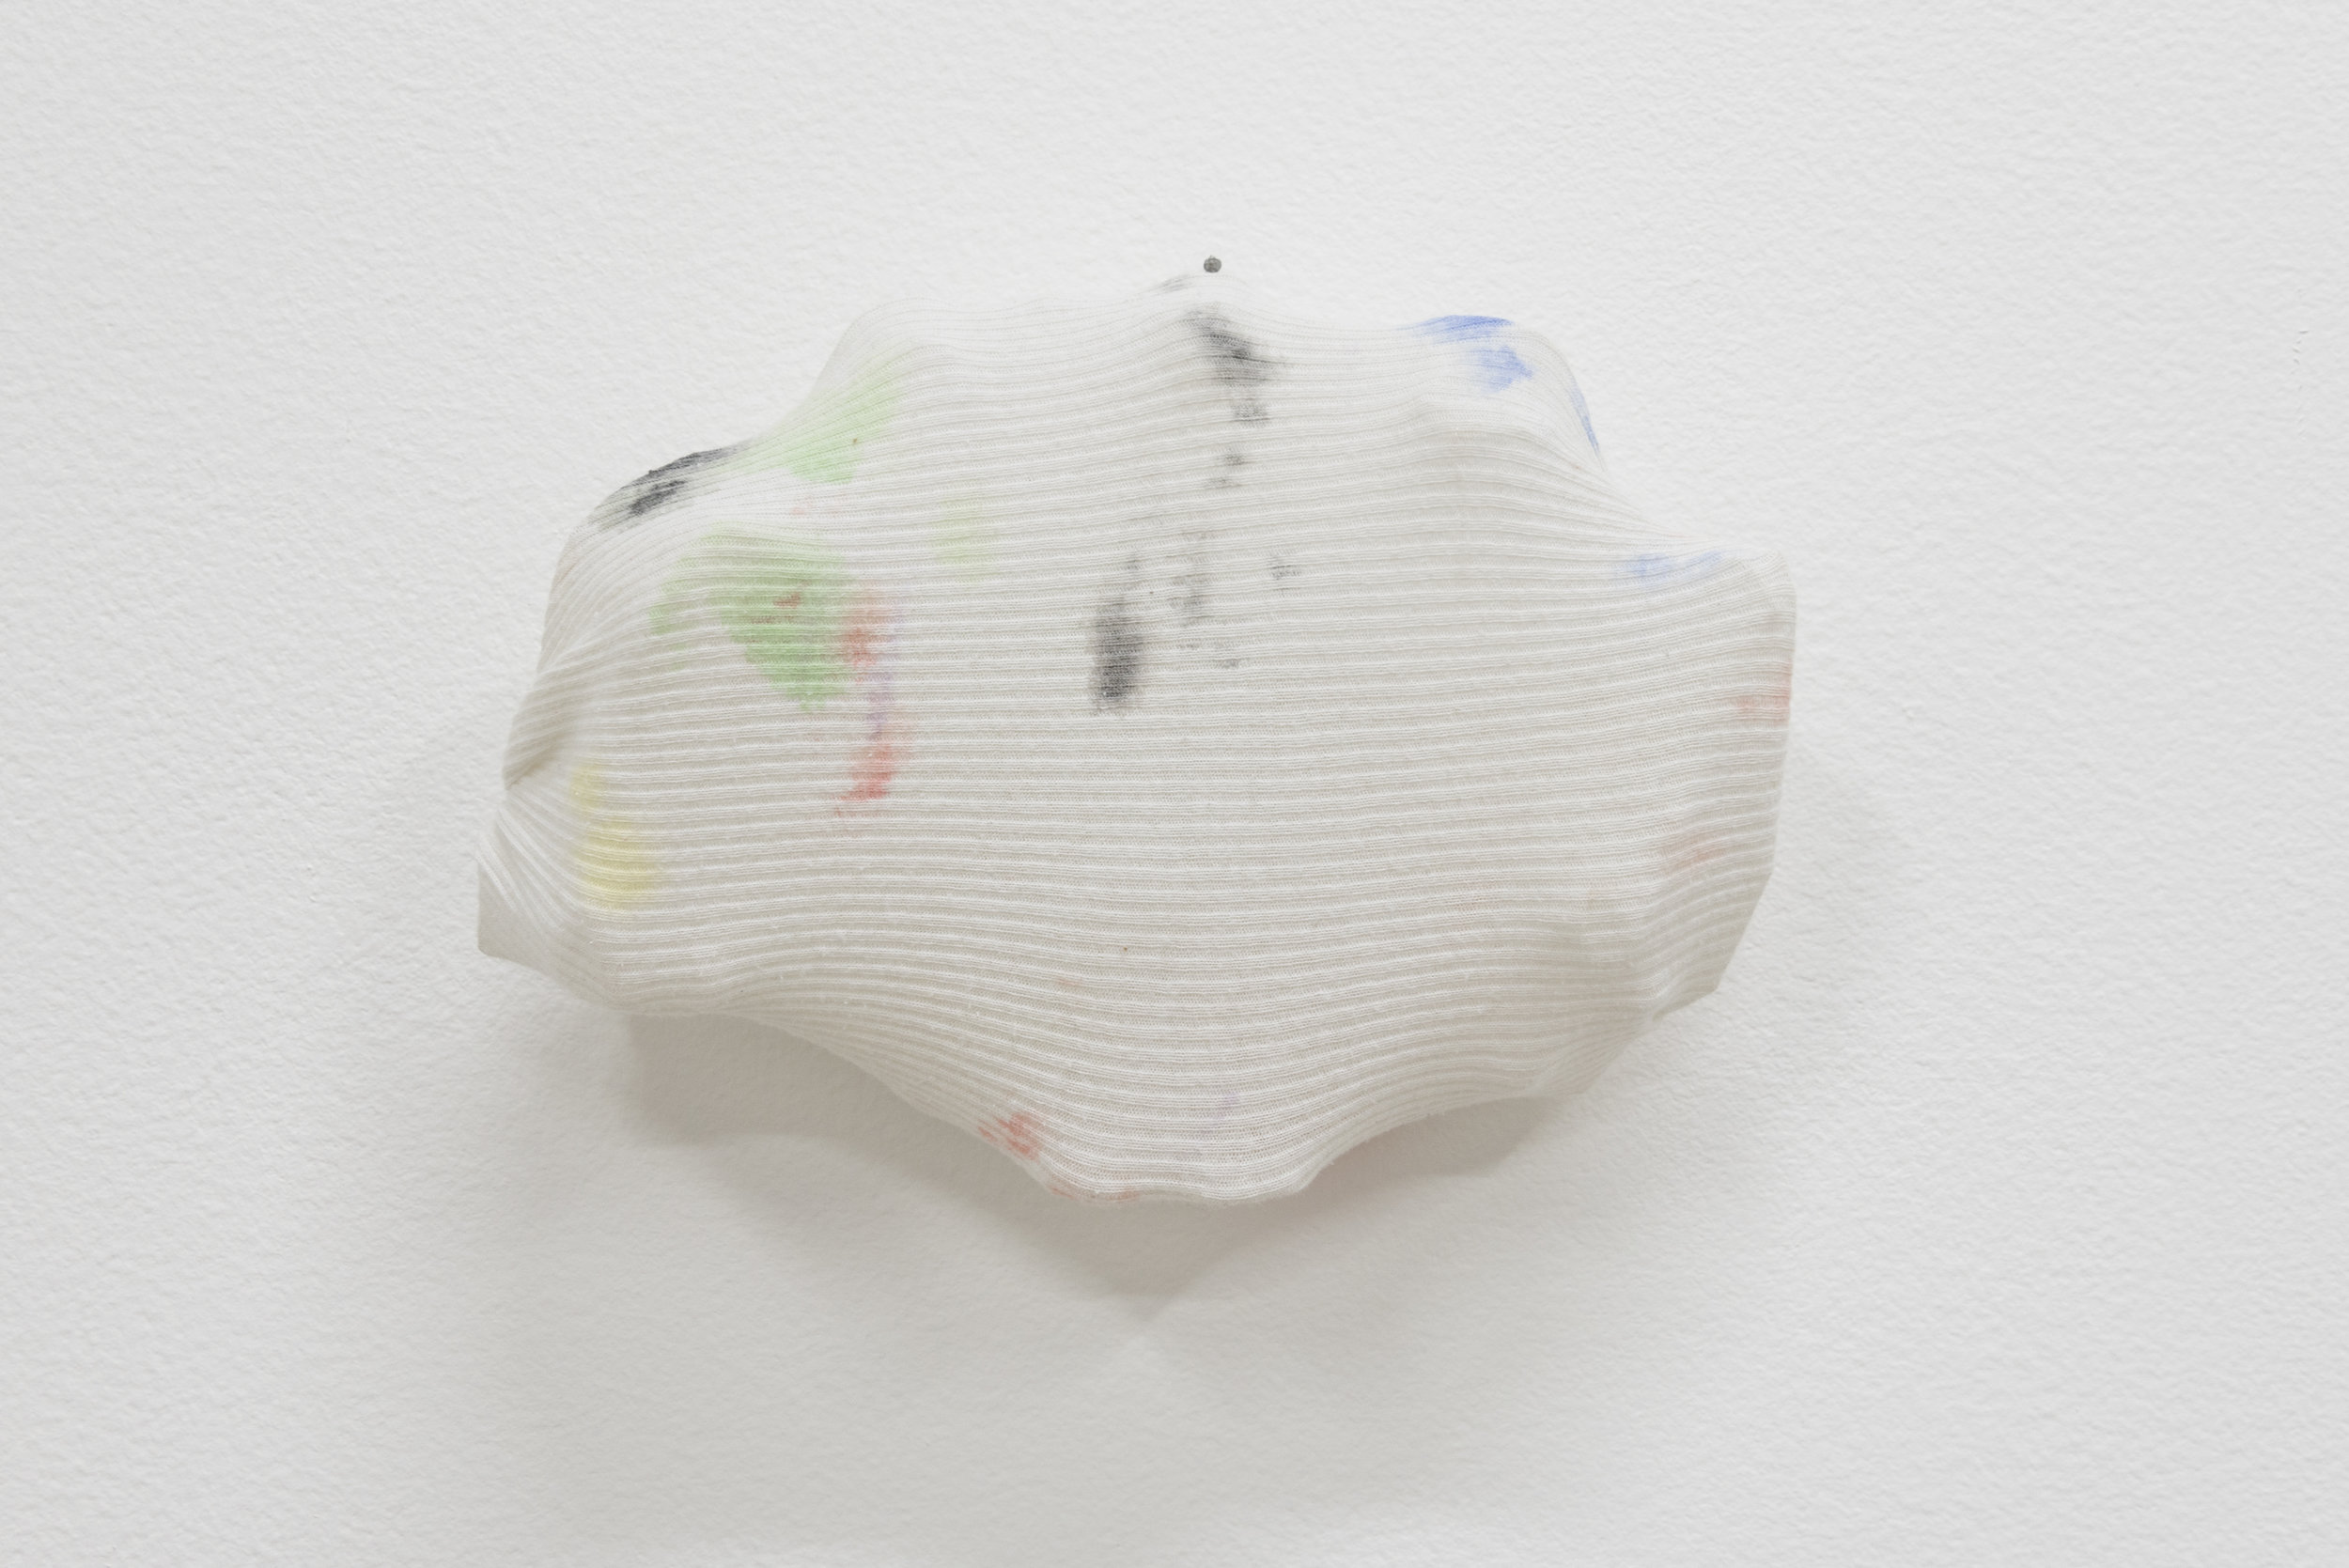 Sara Hubbs,  Closed Mouth, 2 017, Men's undershirt, ink, plastic toy container